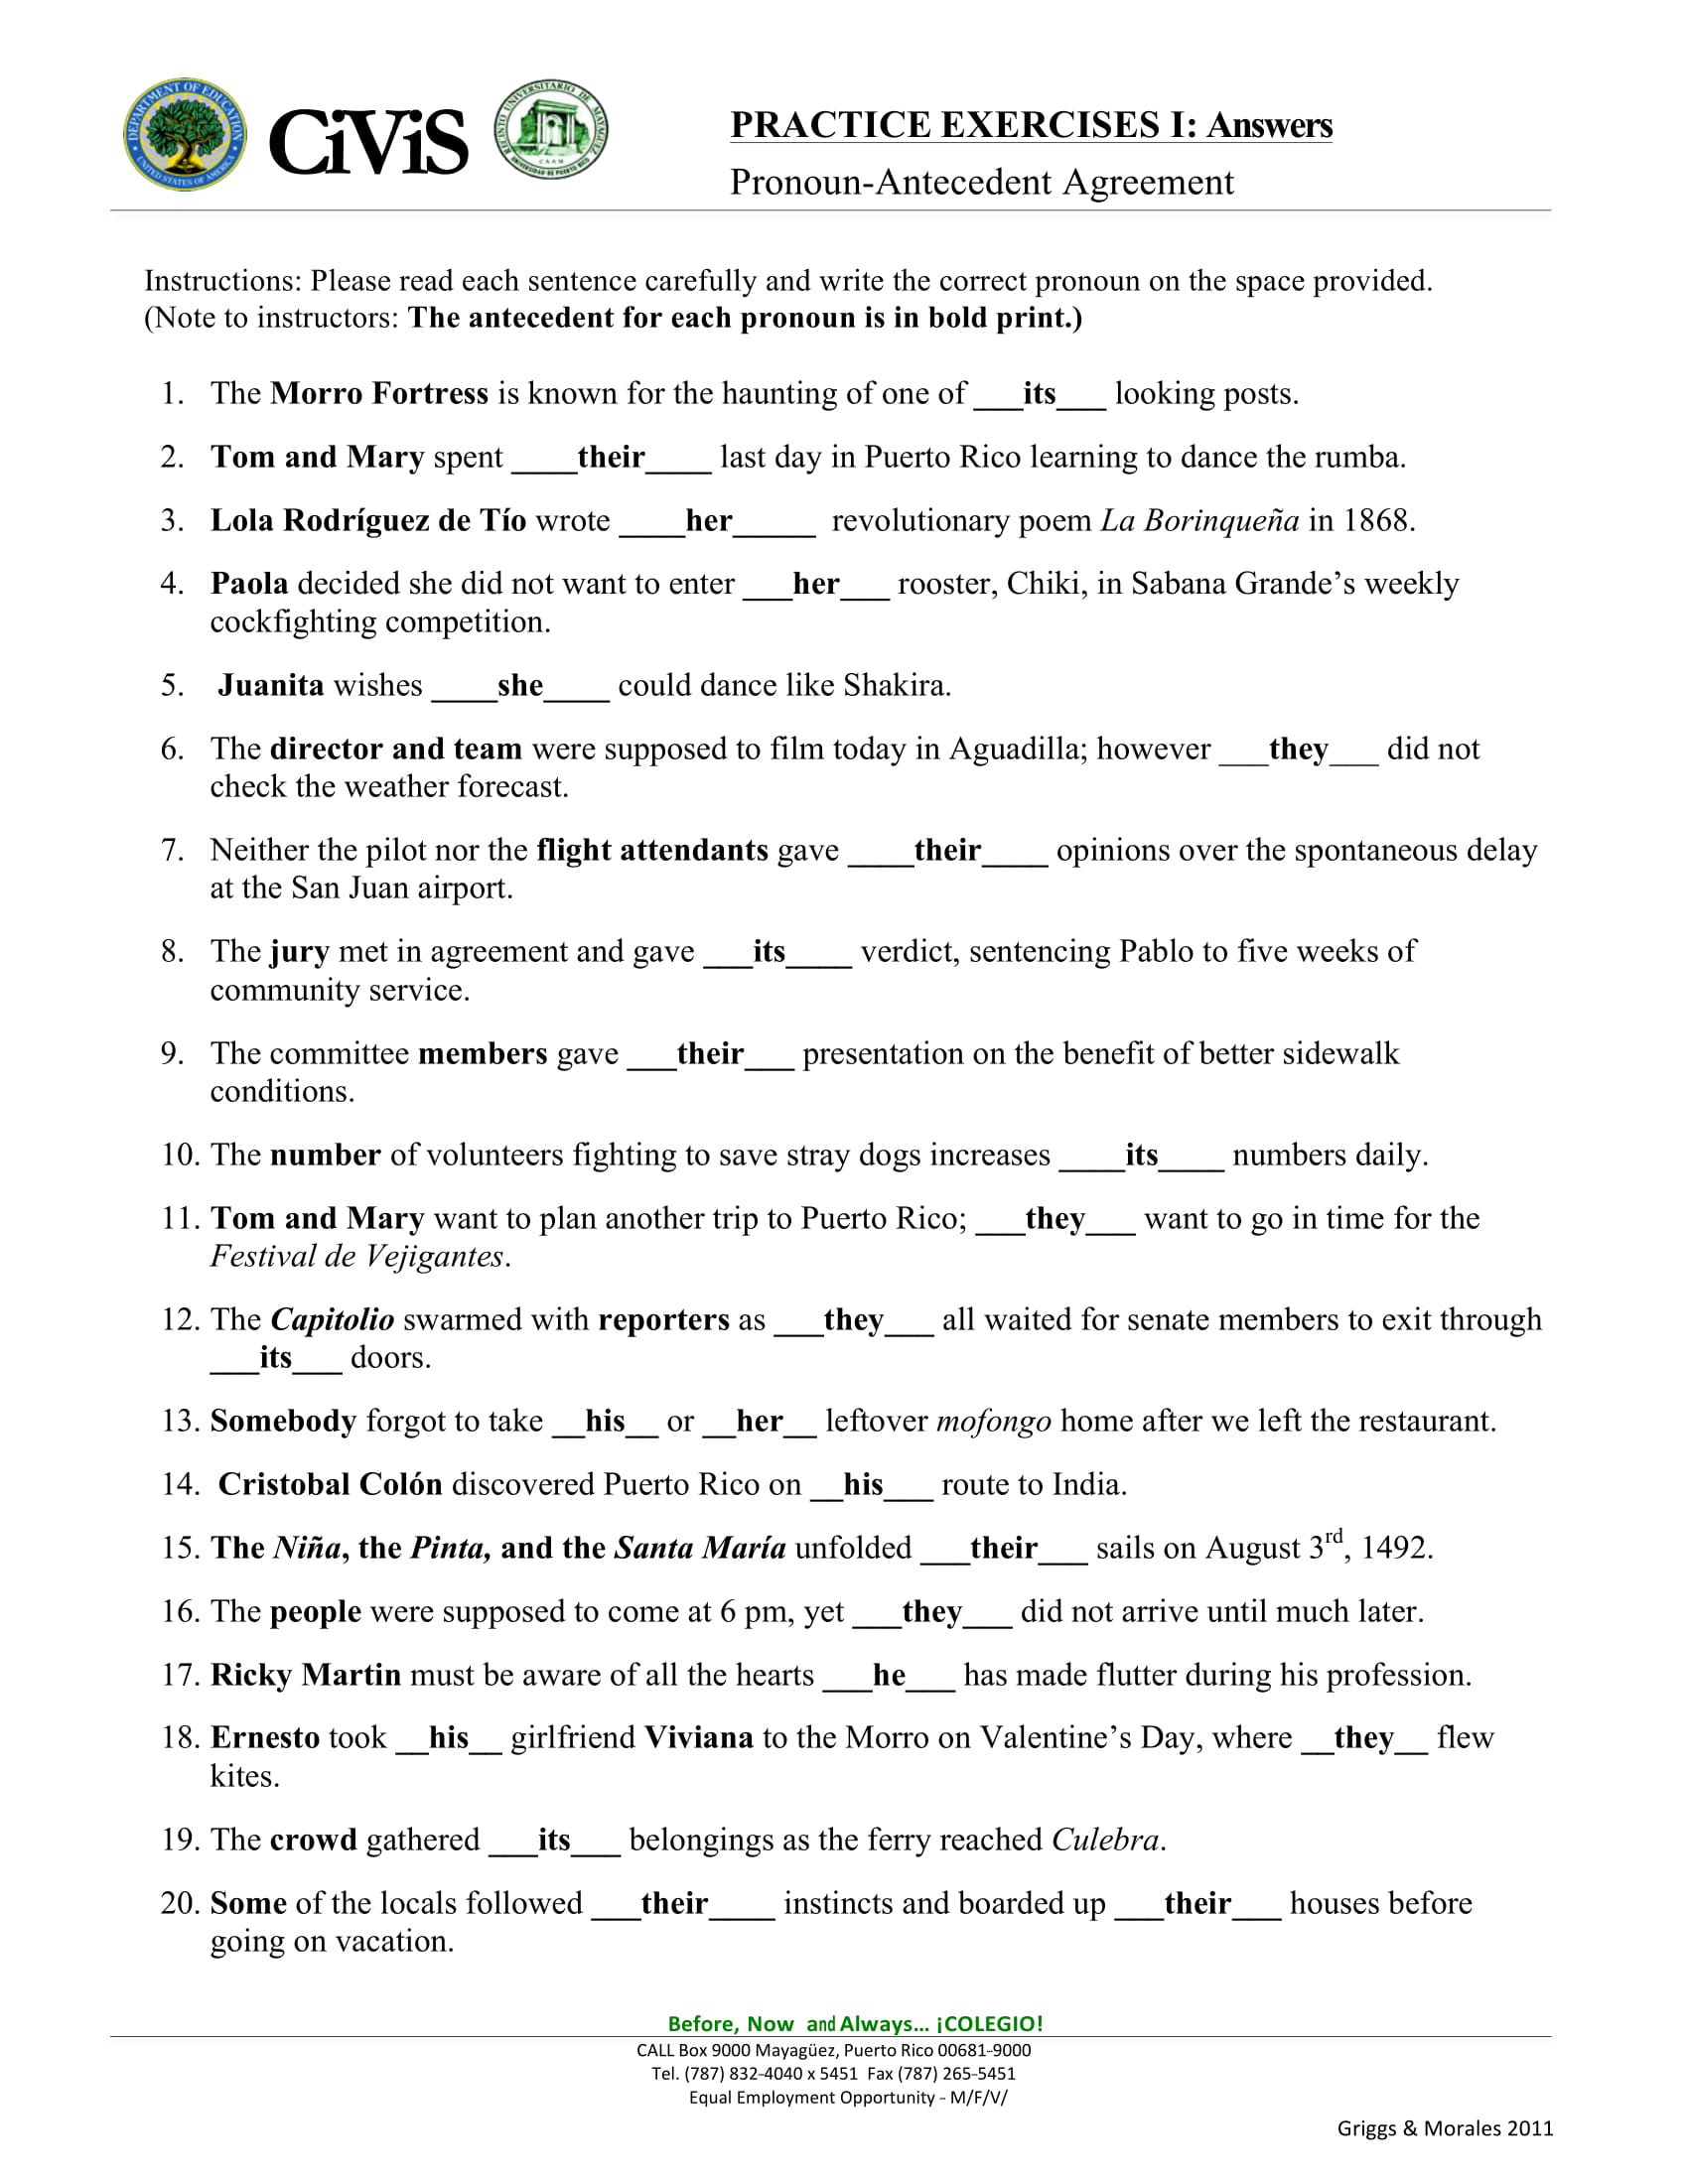 32 Creative Photo Of Pronoun Antecedent Agreement